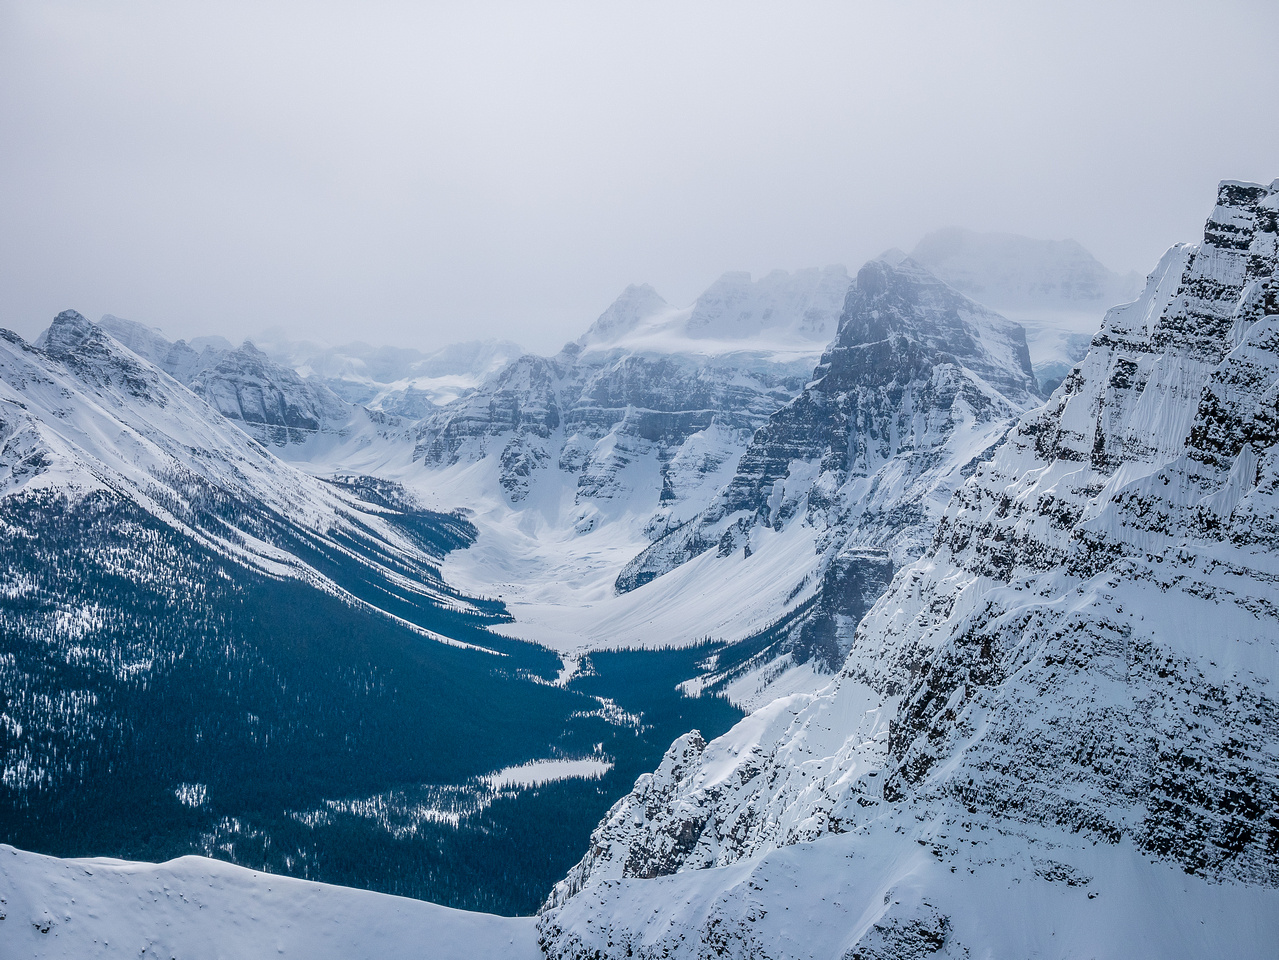 Looking into the Consolation Lakes area over the east ridge of Mount Temple. Panorama Ridge at left and Tower of Babel at right.